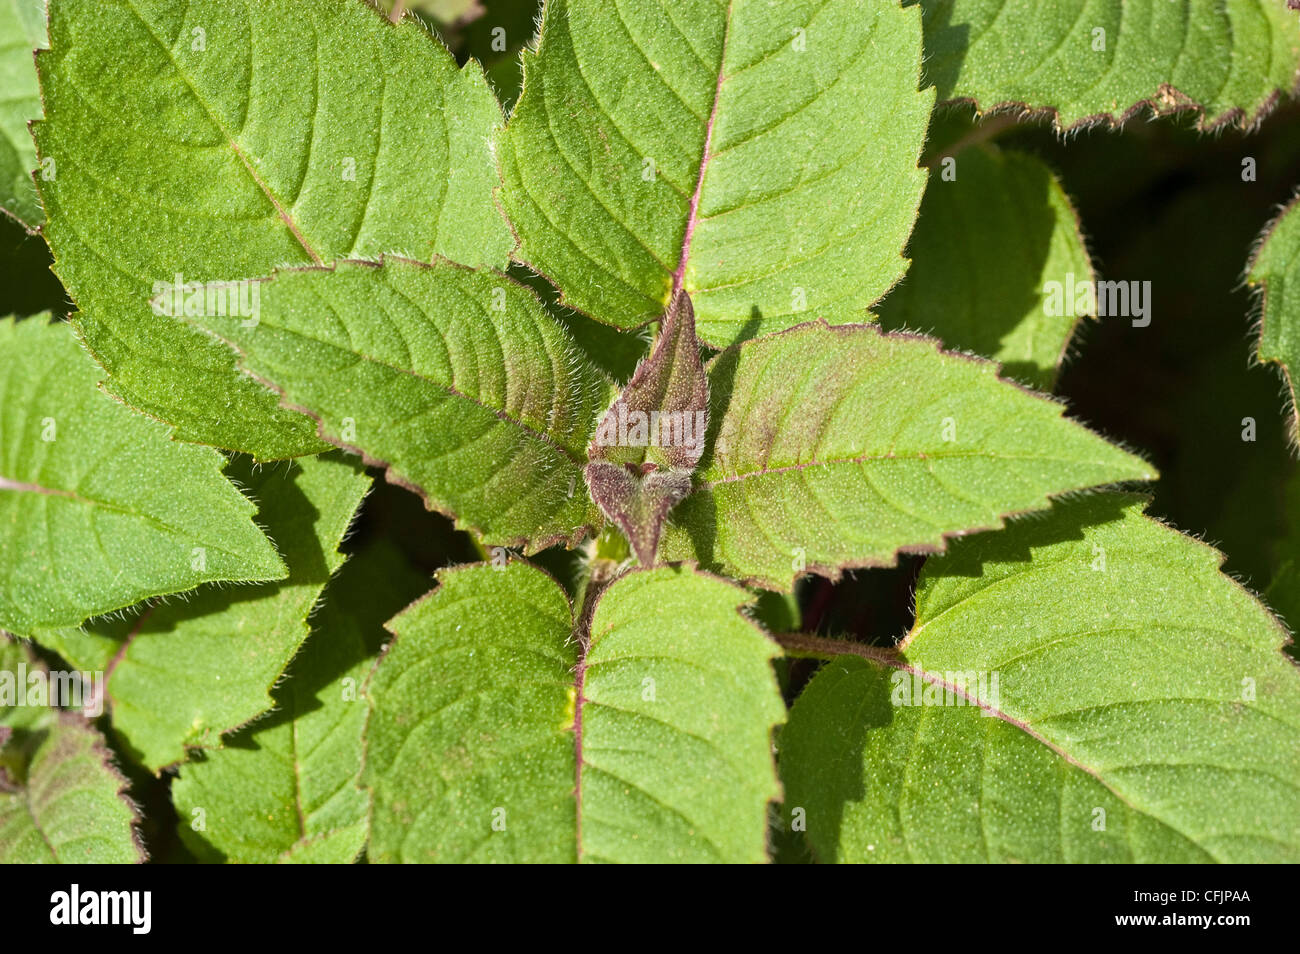 Green Young Foliage Leaves Of